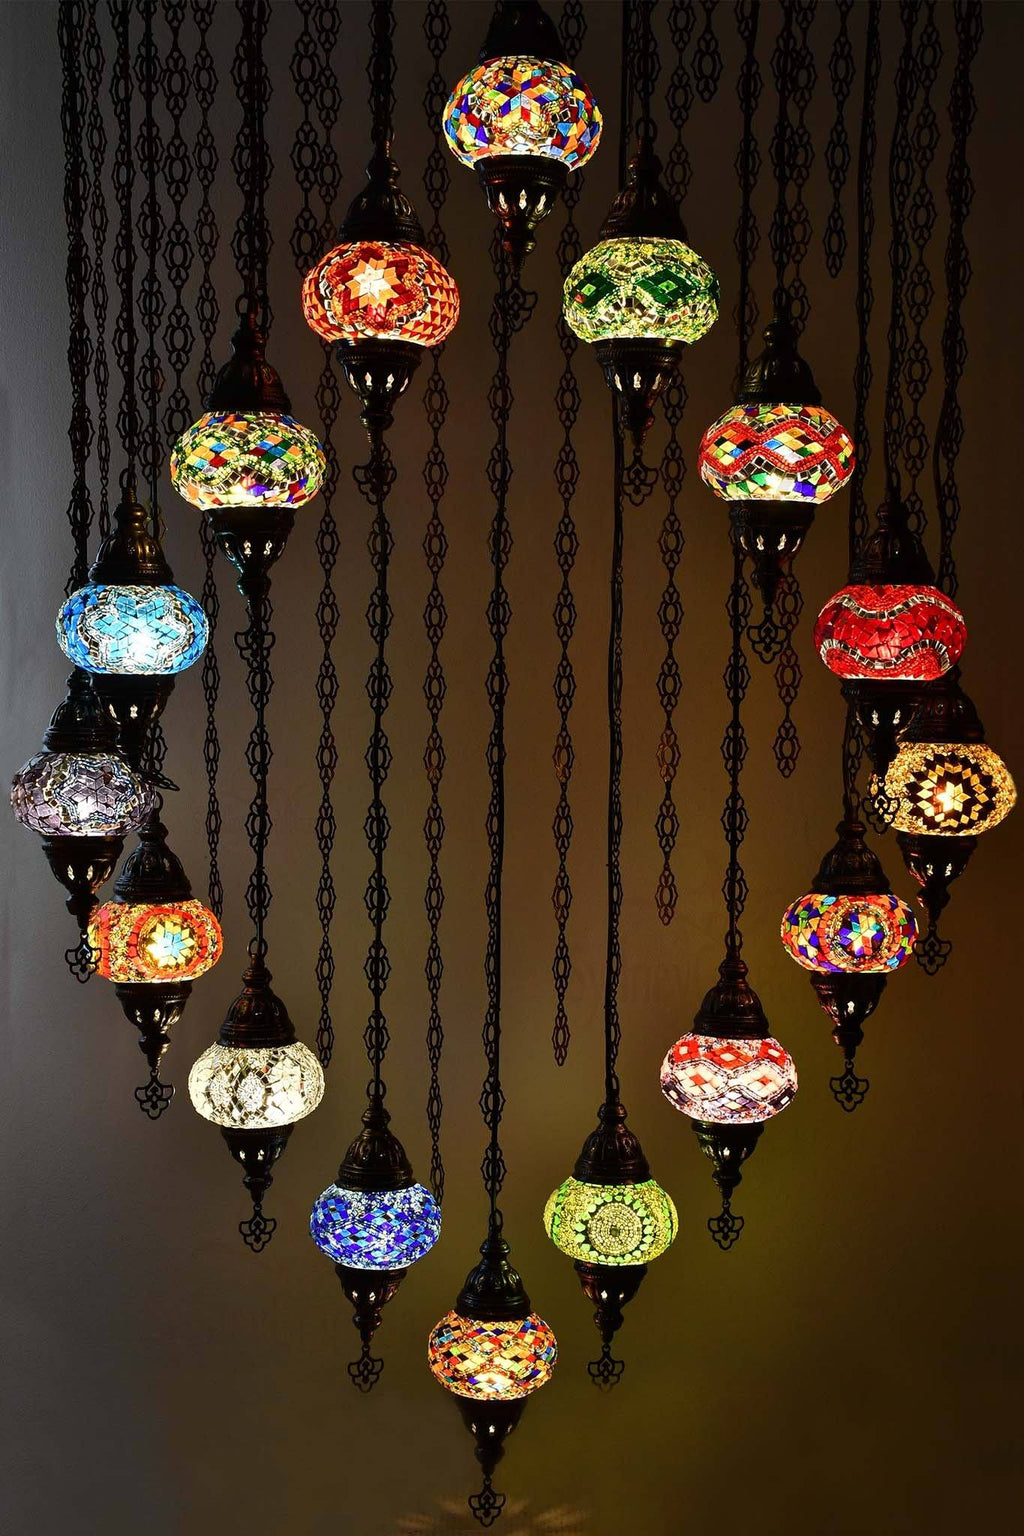 Turkish Mosaic Chandelier Light 16 Globes Lighting Sydney Grand Bazaar